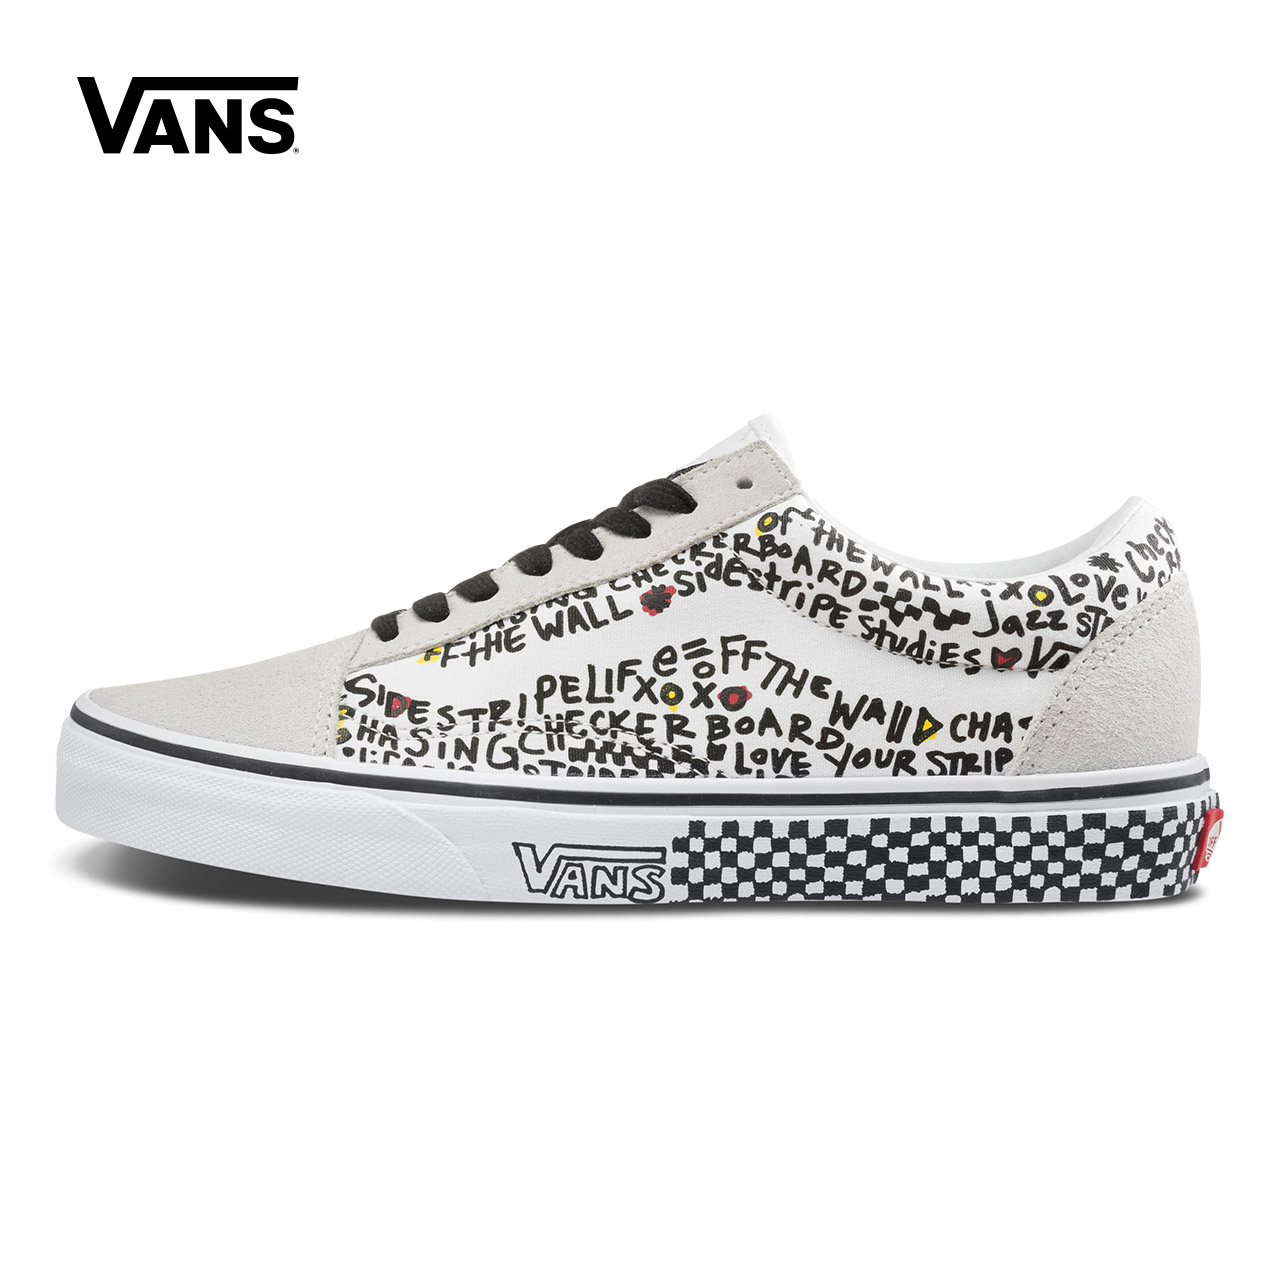 9773ebe8e7a175 Original New Arrival Vans Men s   Women s Classic OLD SKOOL Low-top  Skateboarding Shoes Sneakers Canvas Comfortable VN0A38G1U7B